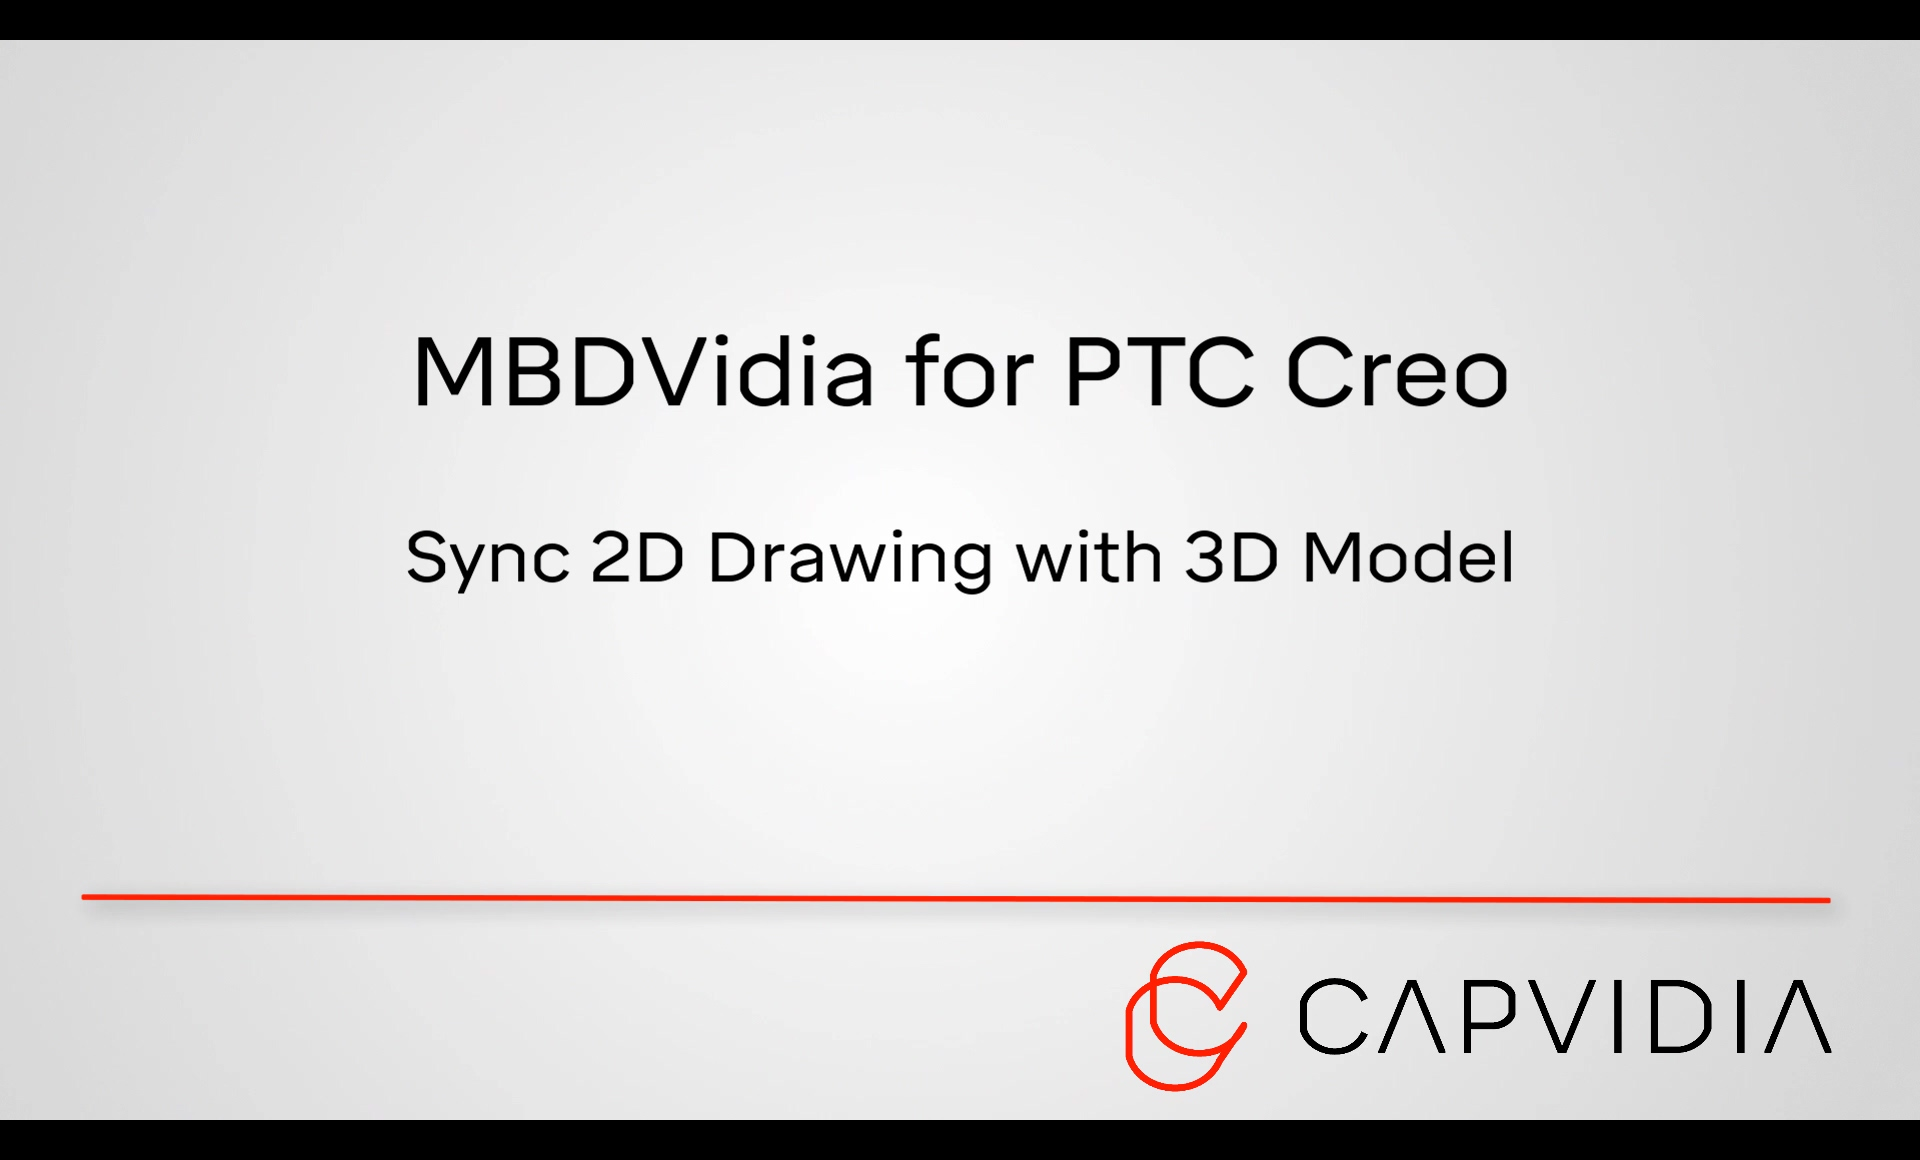 1- MBDVidia (PTC Creo - Sync 2D Drawing With 3D Model)